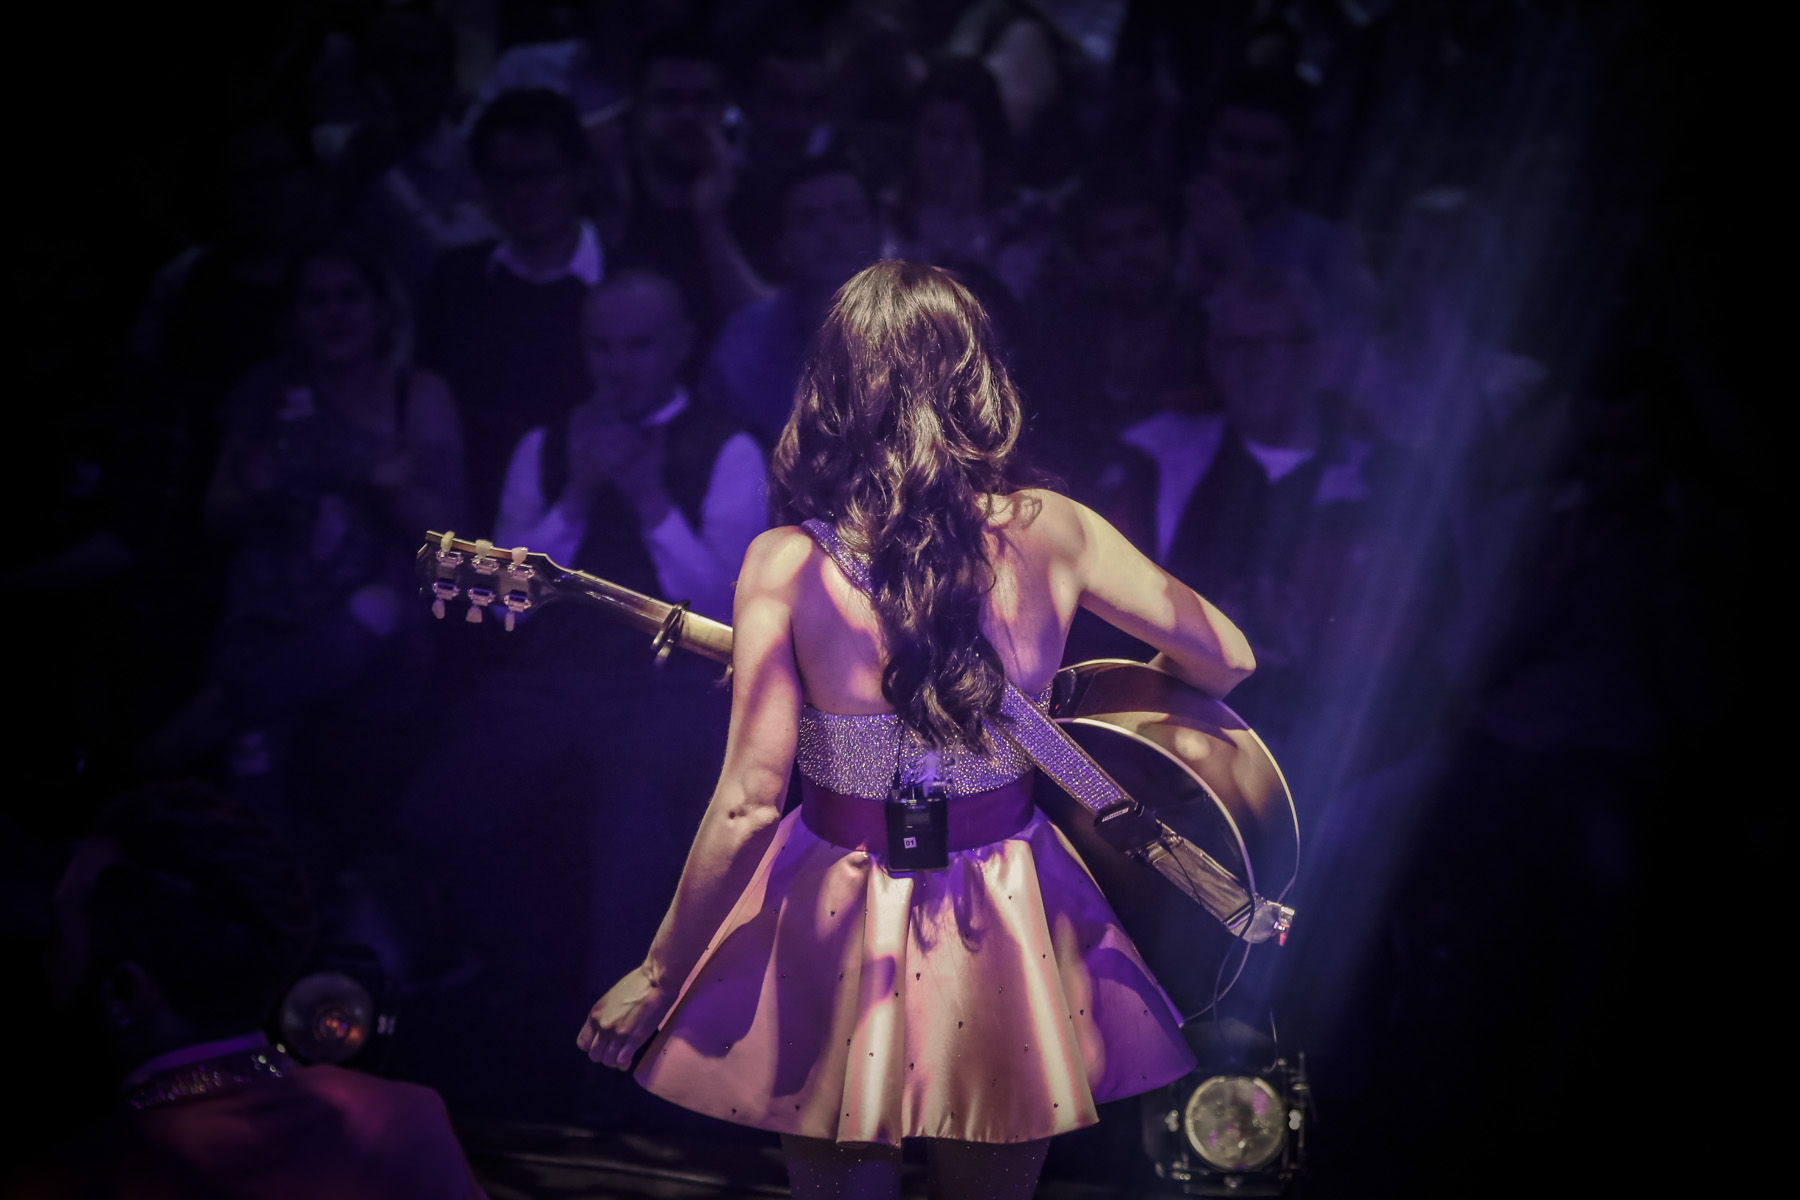 Kacey Musgraves at the Royal Albert Hall by Christie Goodwin